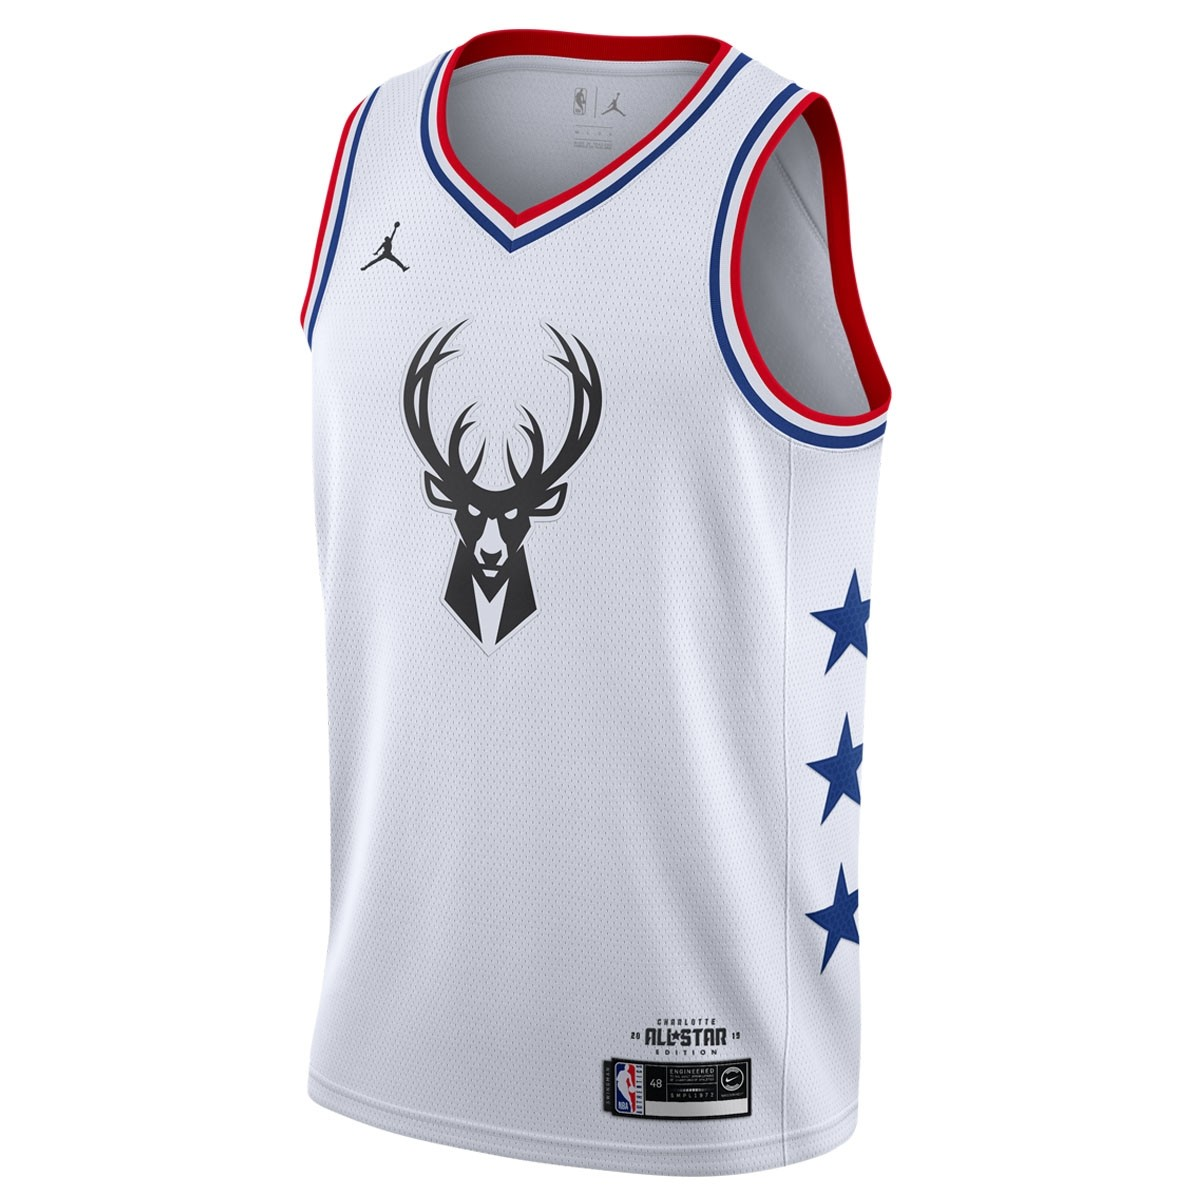 Jordan Swigman Jersey All-Star Antetokounmpo edition 'White'